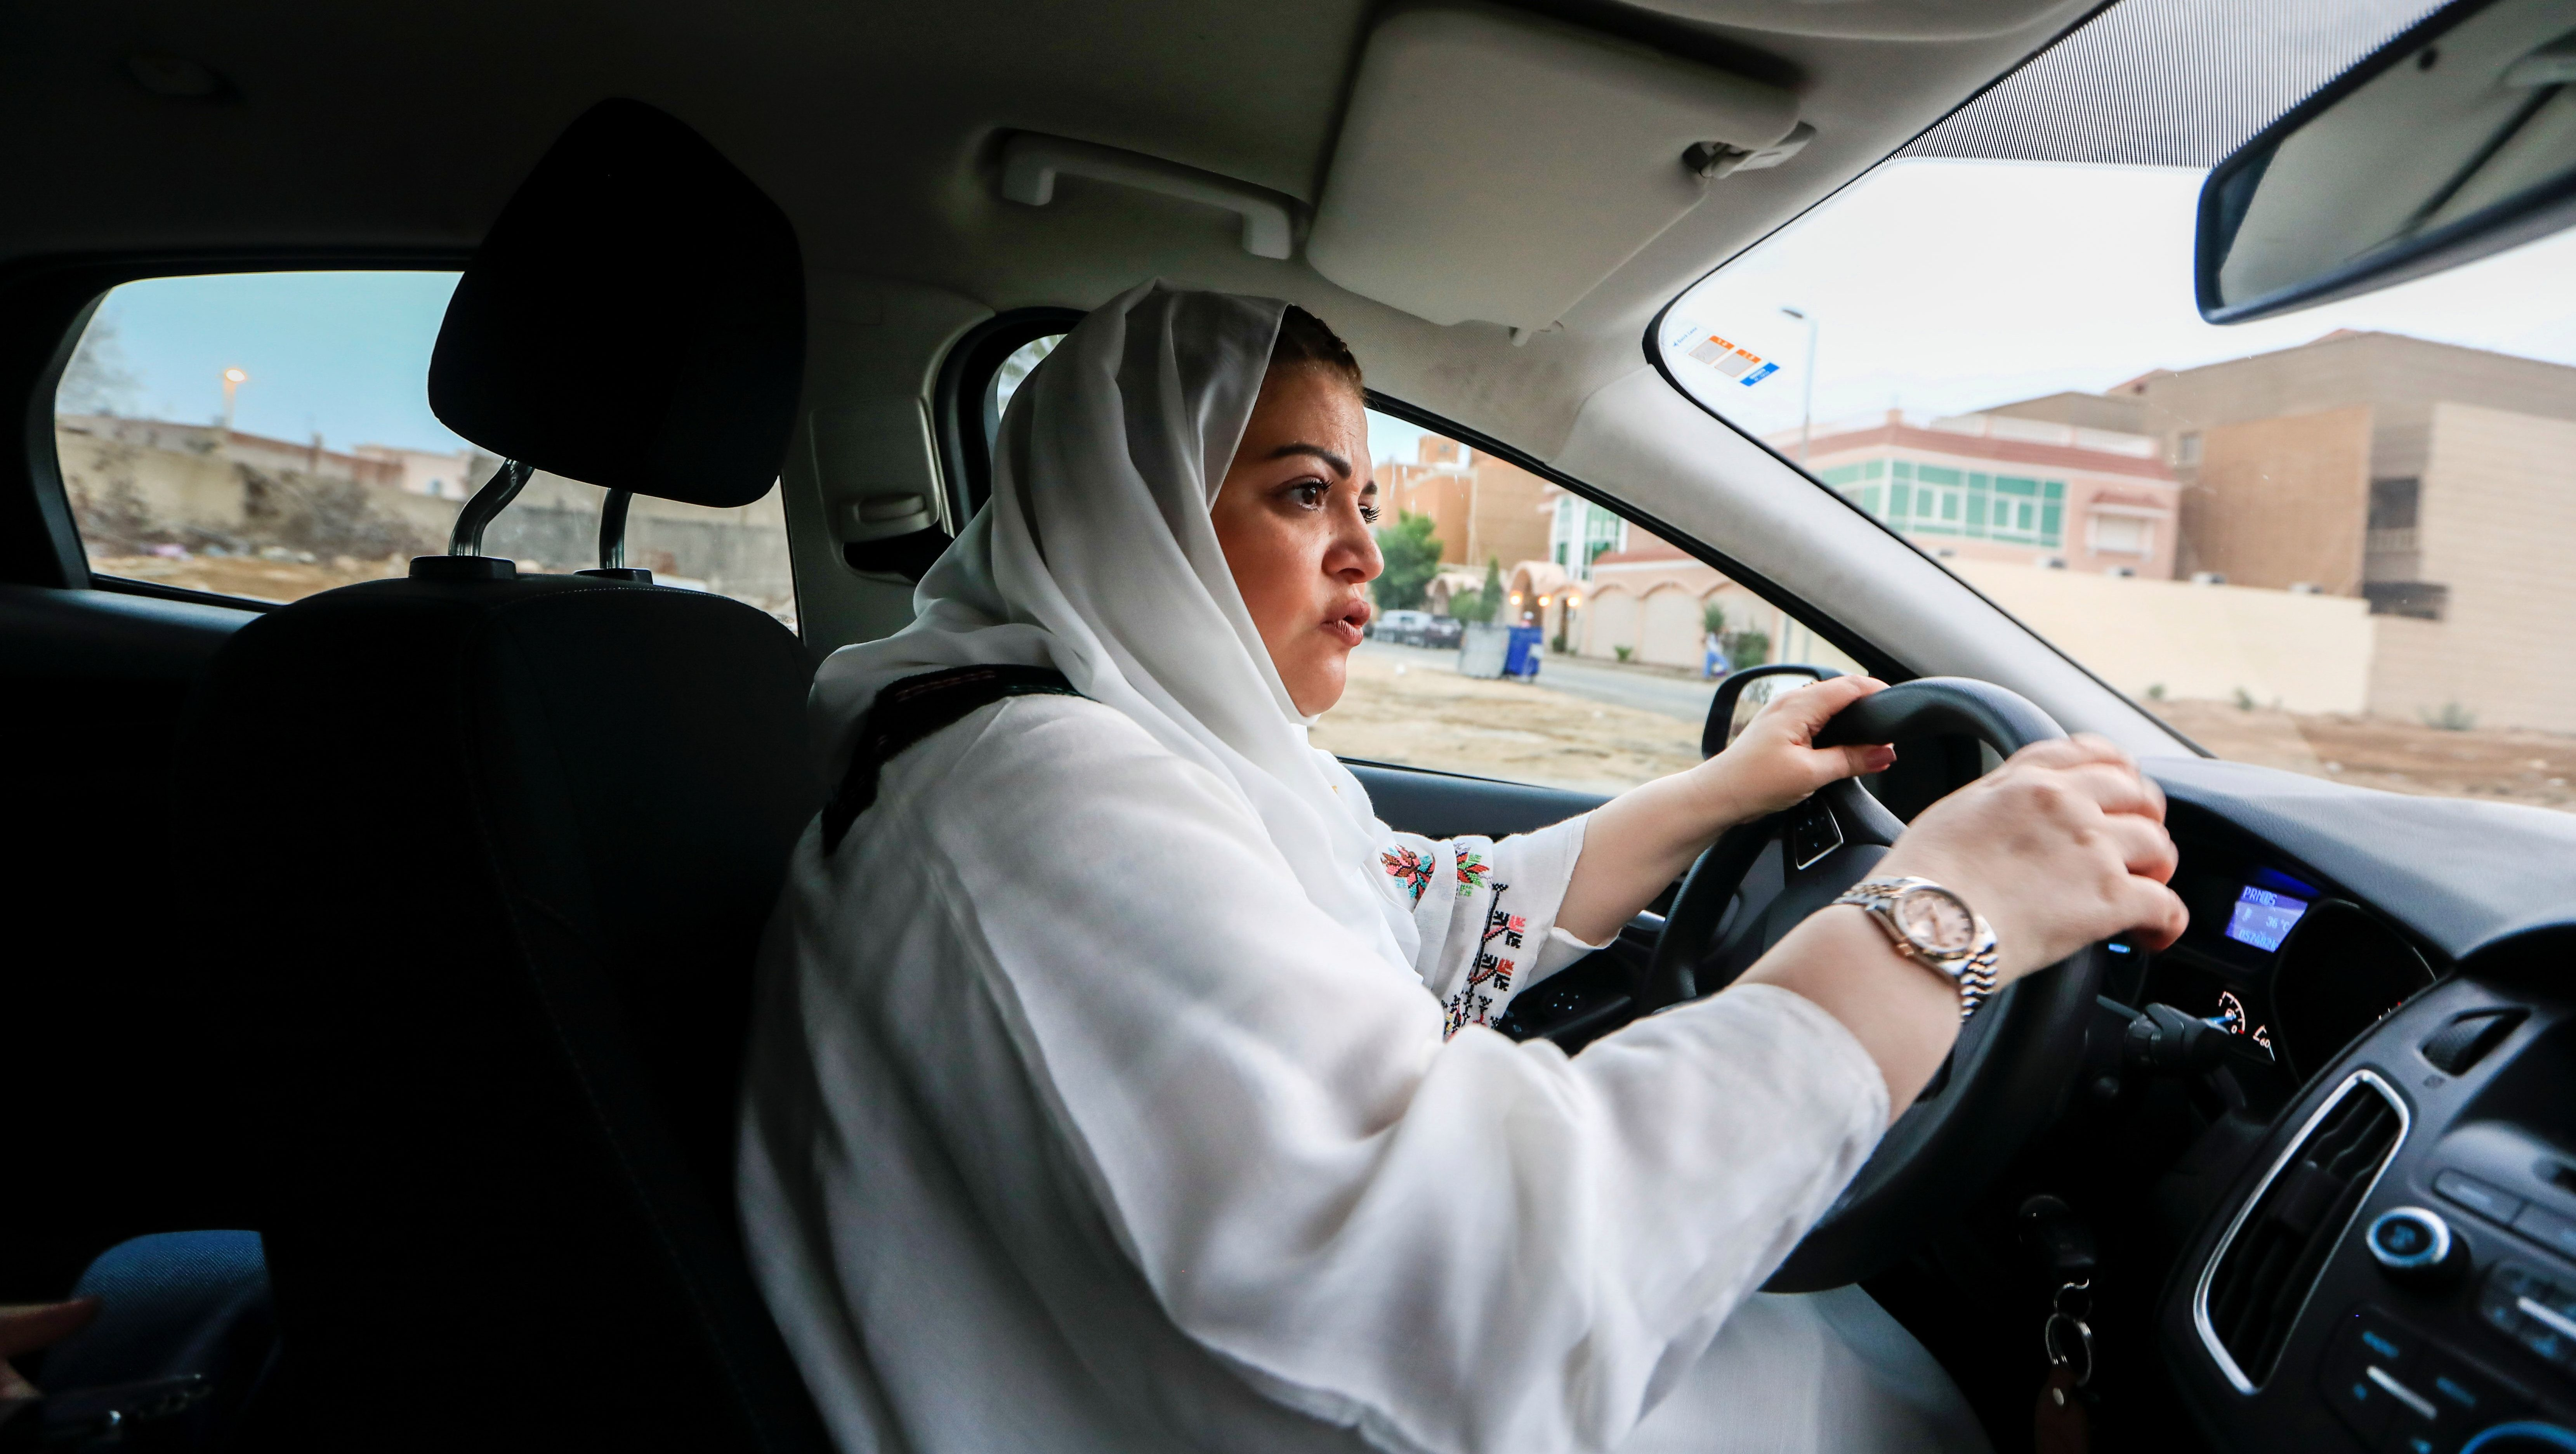 Women are finally being allowed to drive in Saudi Arabia